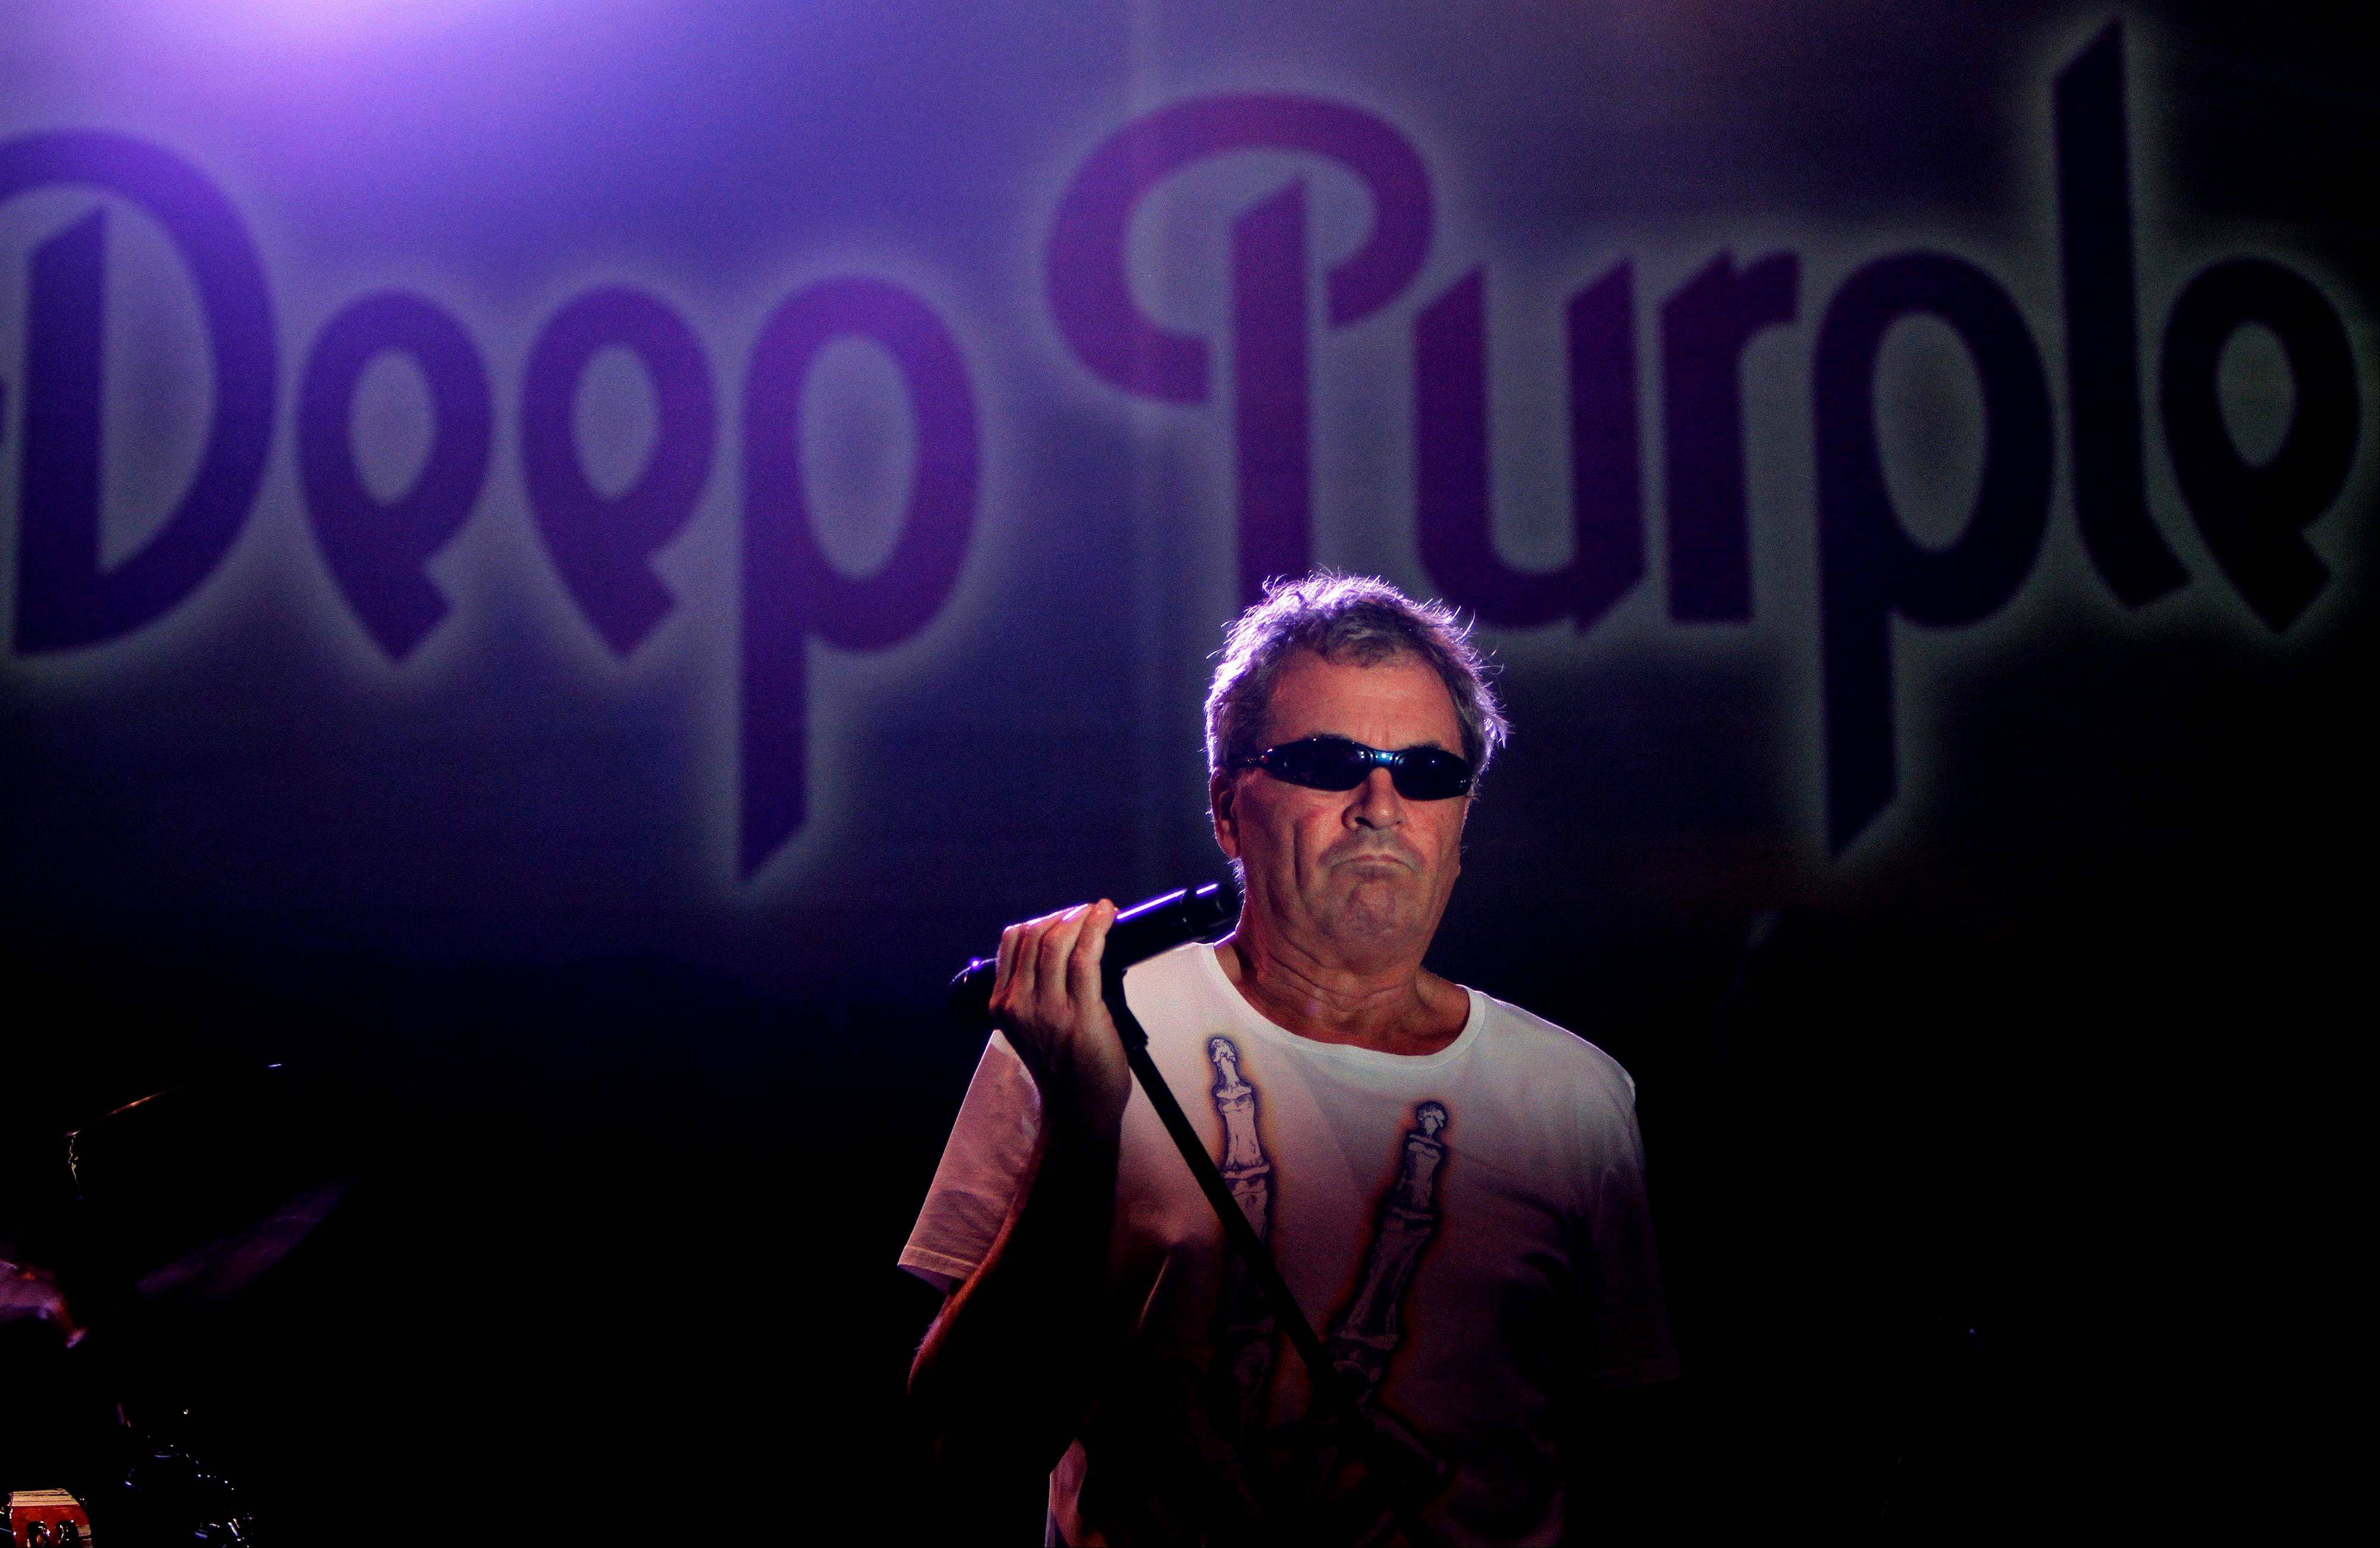 British musician Ian Gillan and the rest of Deep Purple garnered a nomination for induction into the Rock and Roll Hall of Fame in 2013.